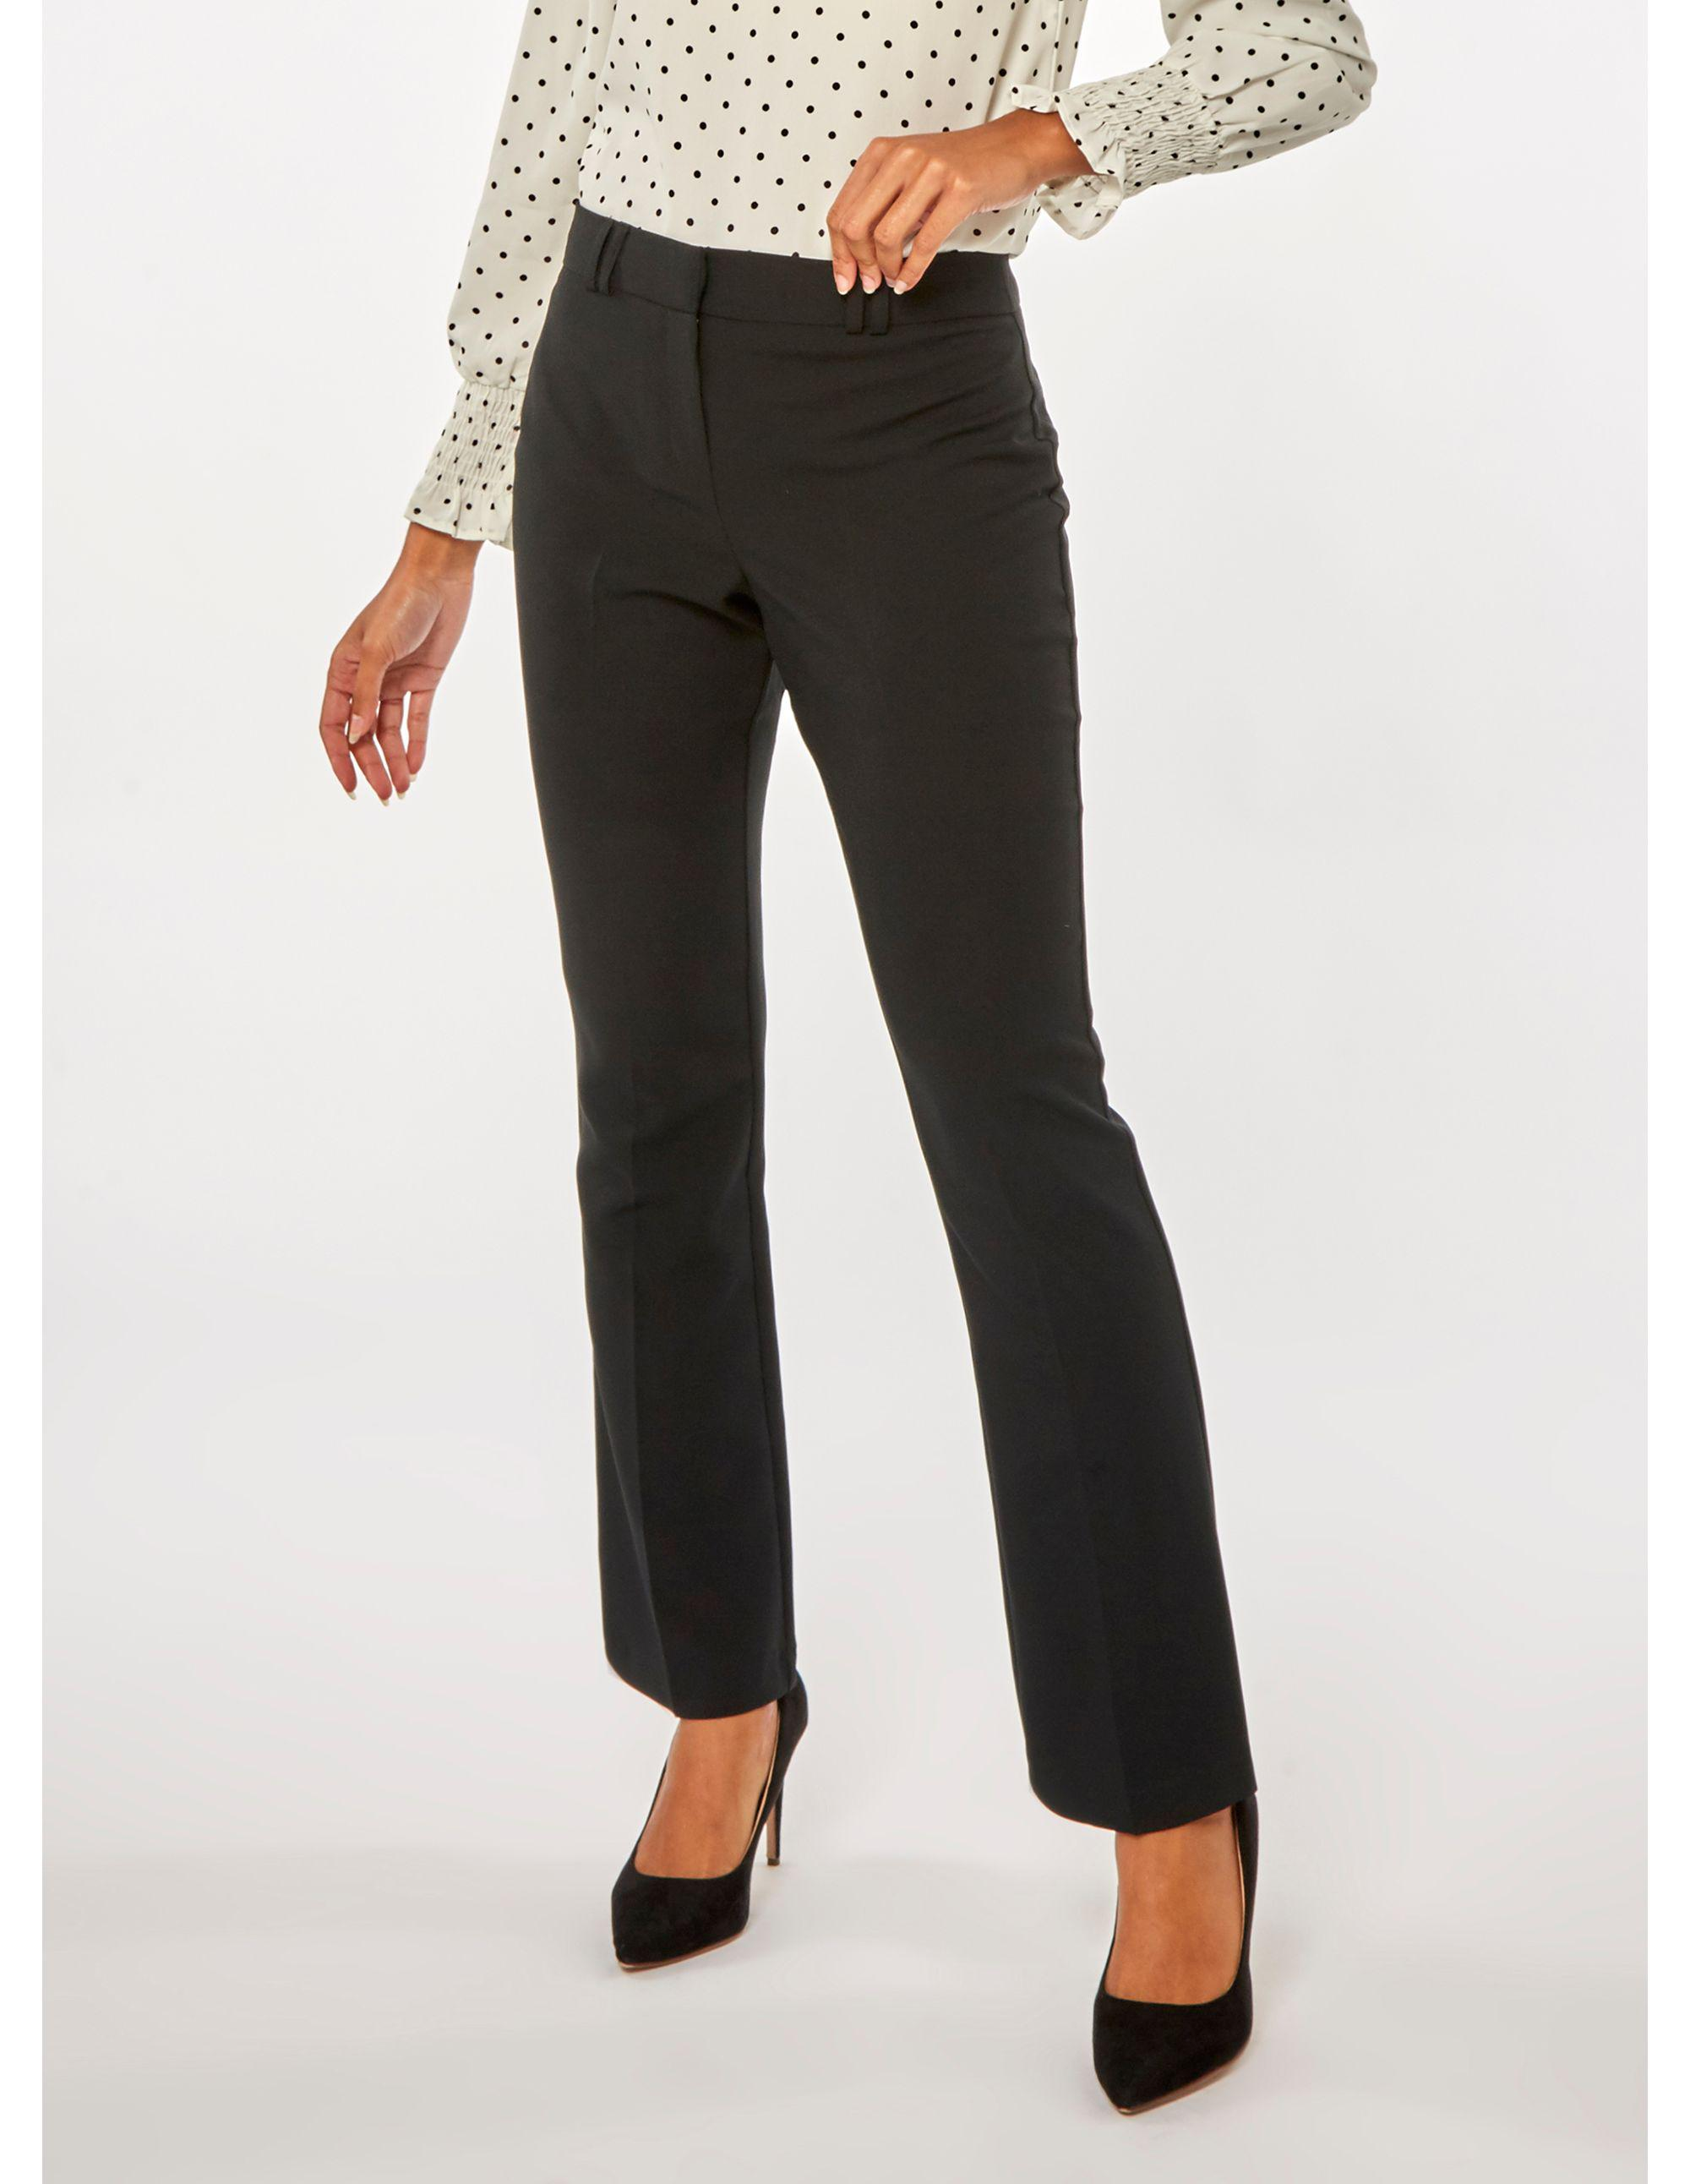 5531b7a539179 Dorothy Perkins Black Bootcut Trousers in Black - Save 25% - Lyst